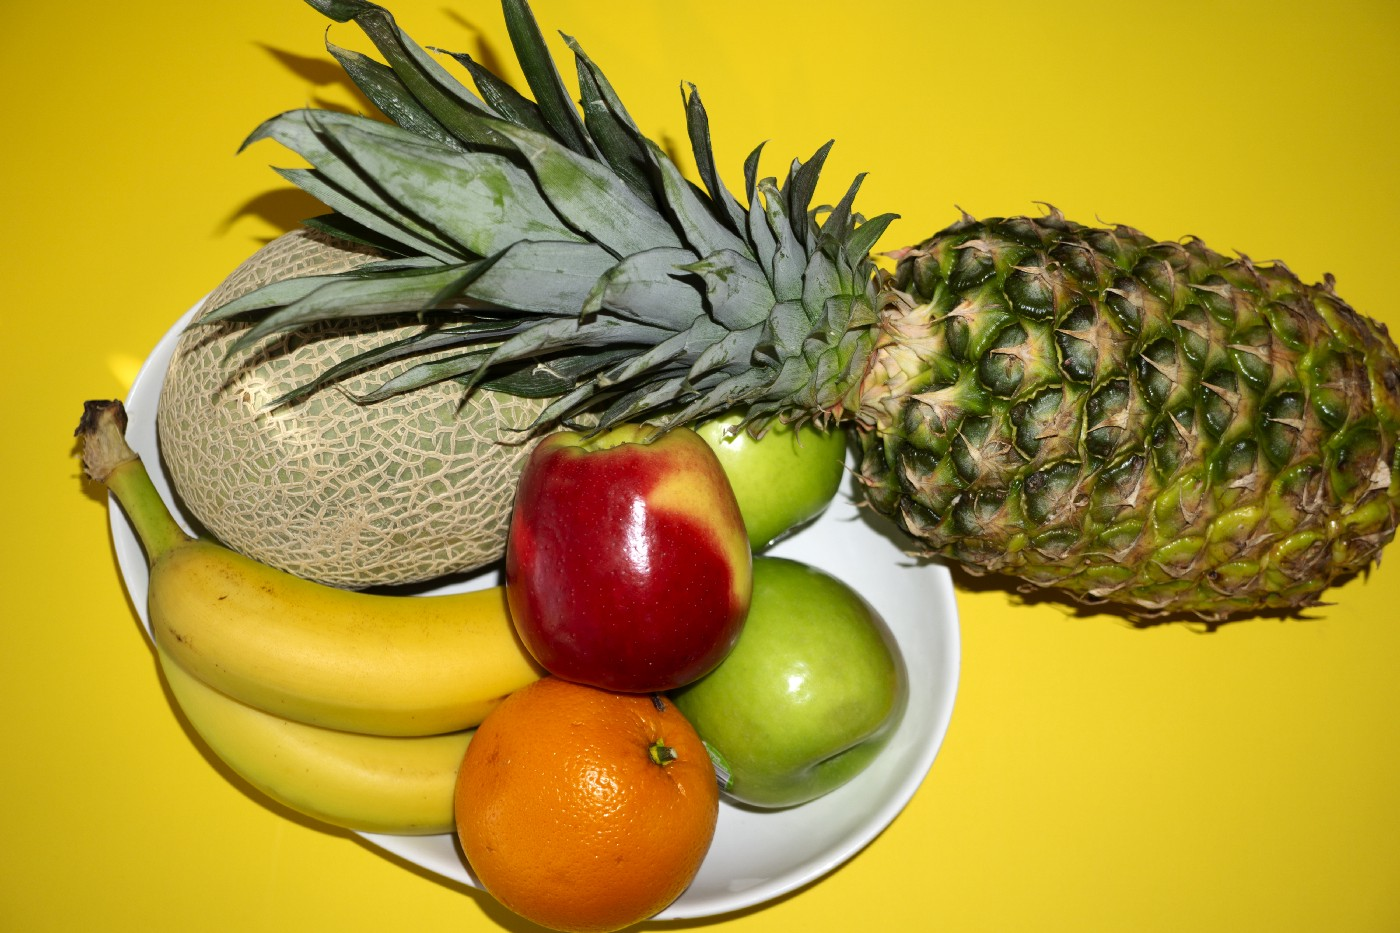 A fruit bow with apples, (red and green) oranges, bananas, a melon and a pineapple.